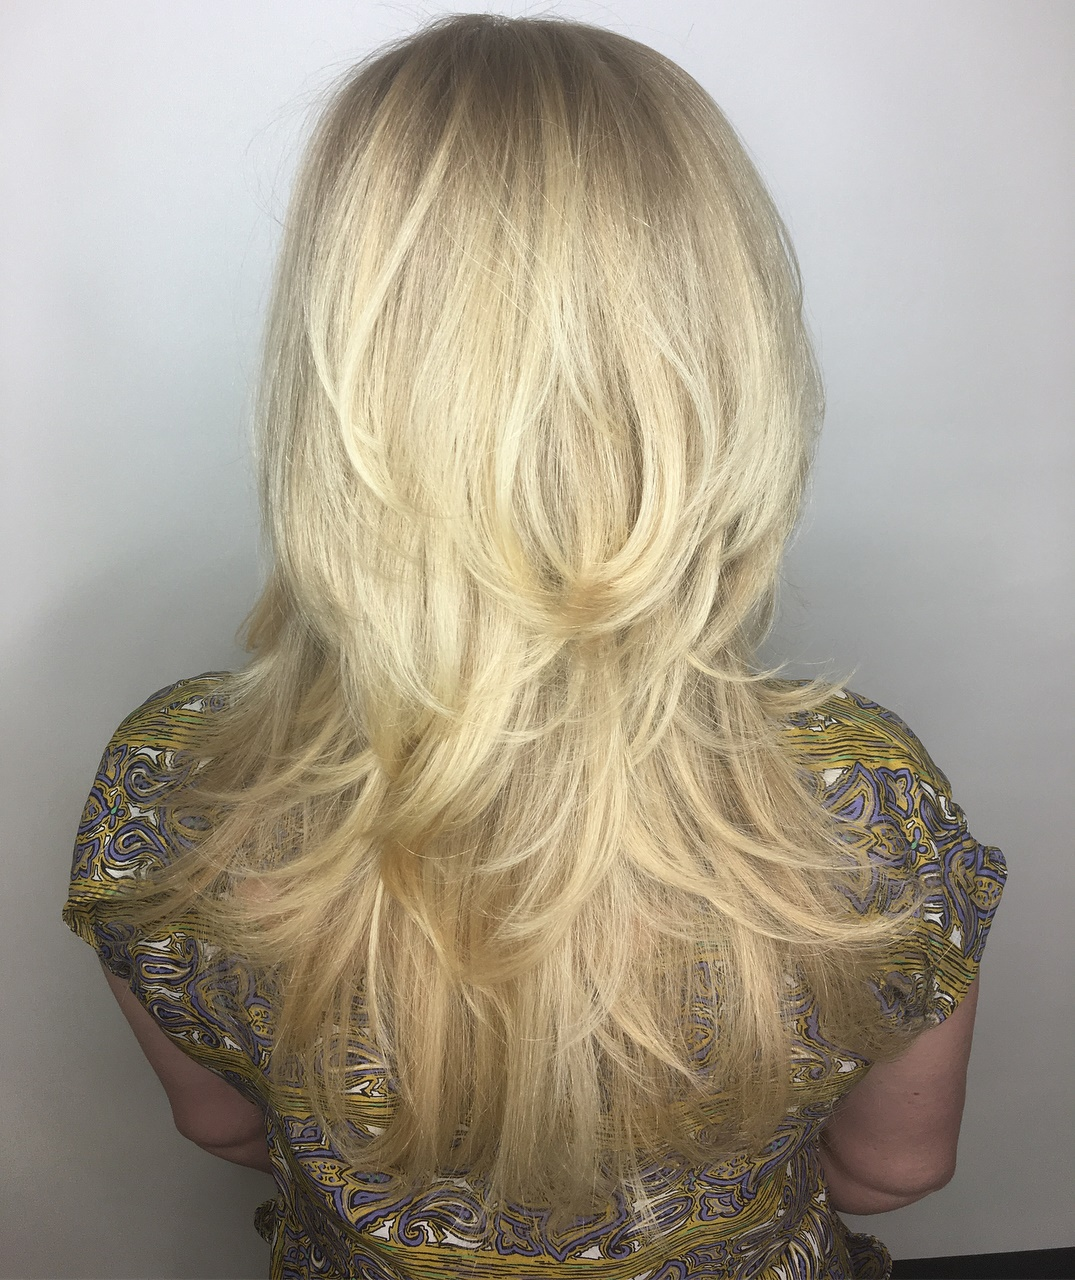 Feathered Blonde Cut for Long Hair